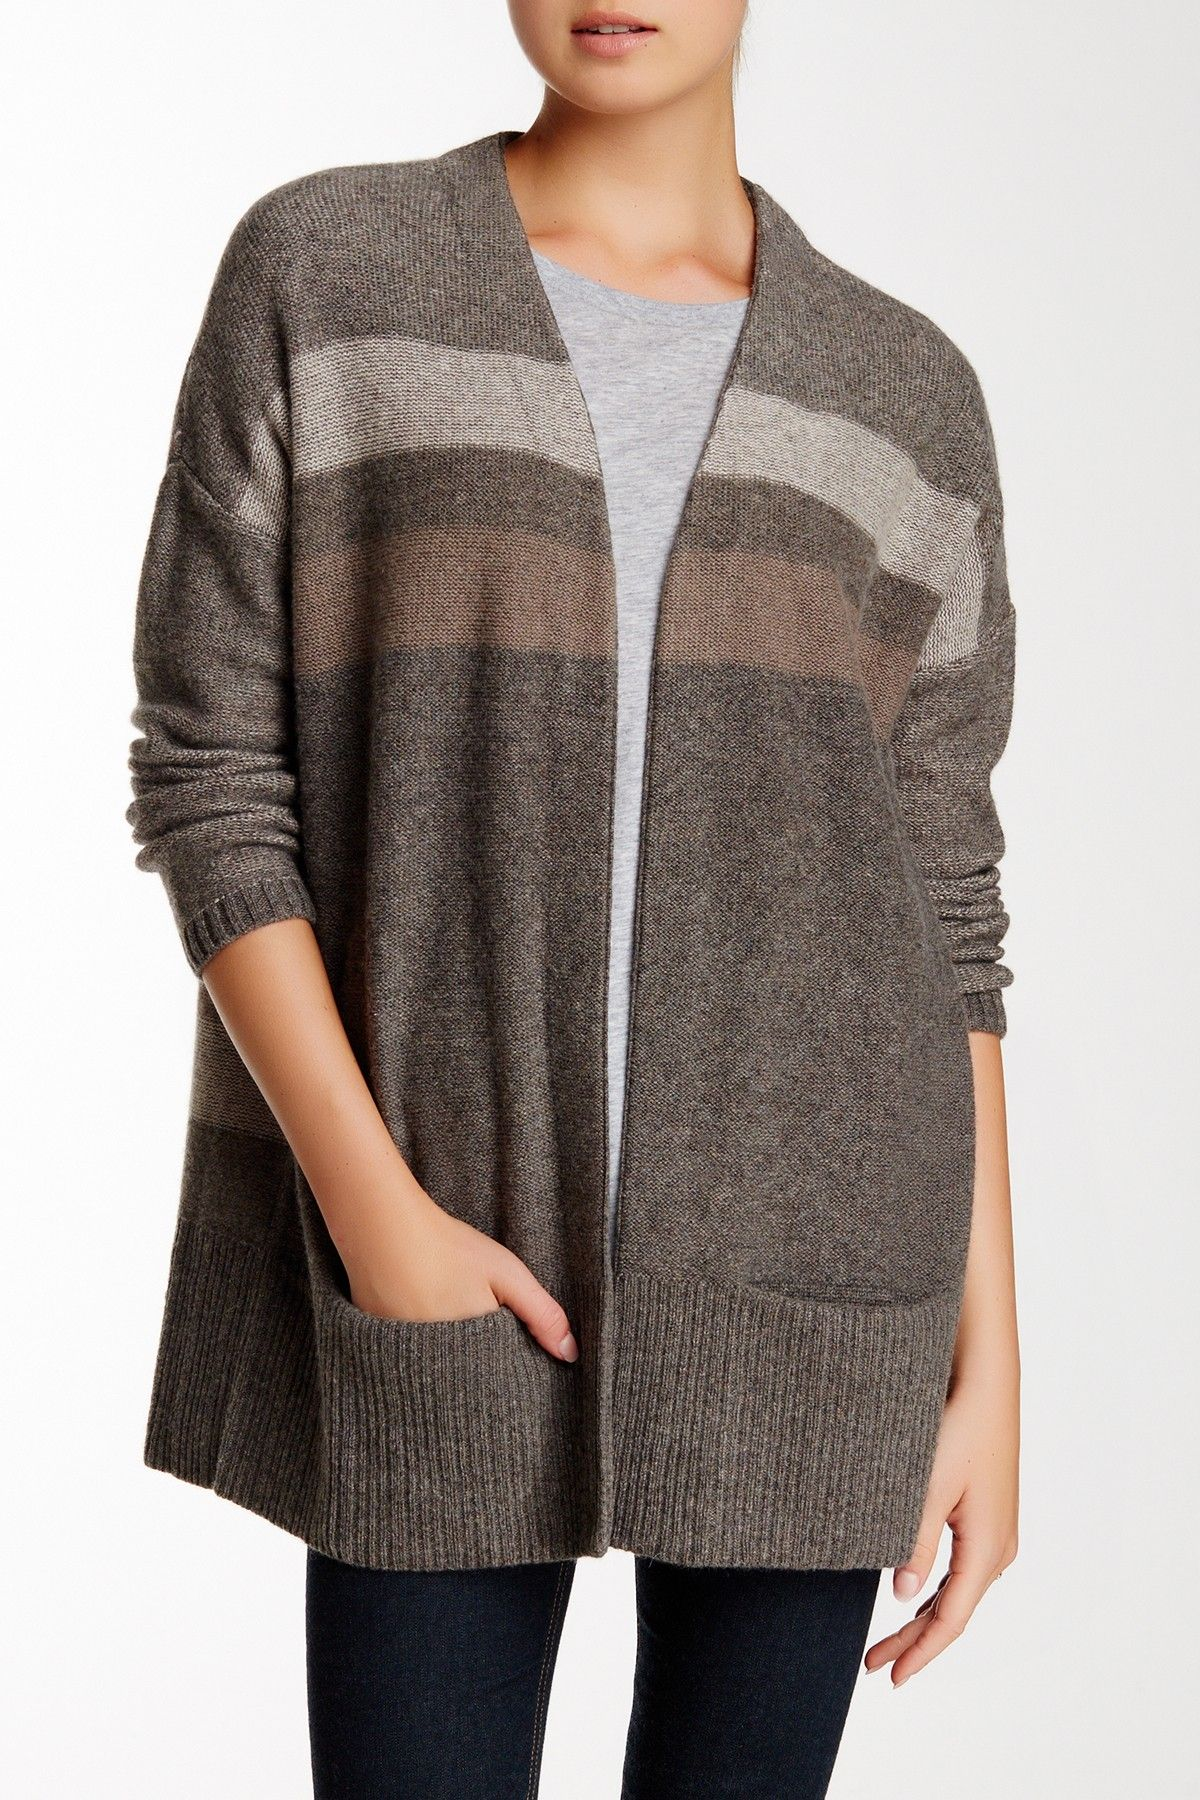 Striped Open Front Cashmere Cardigan Fashion Cashmere Cardigan